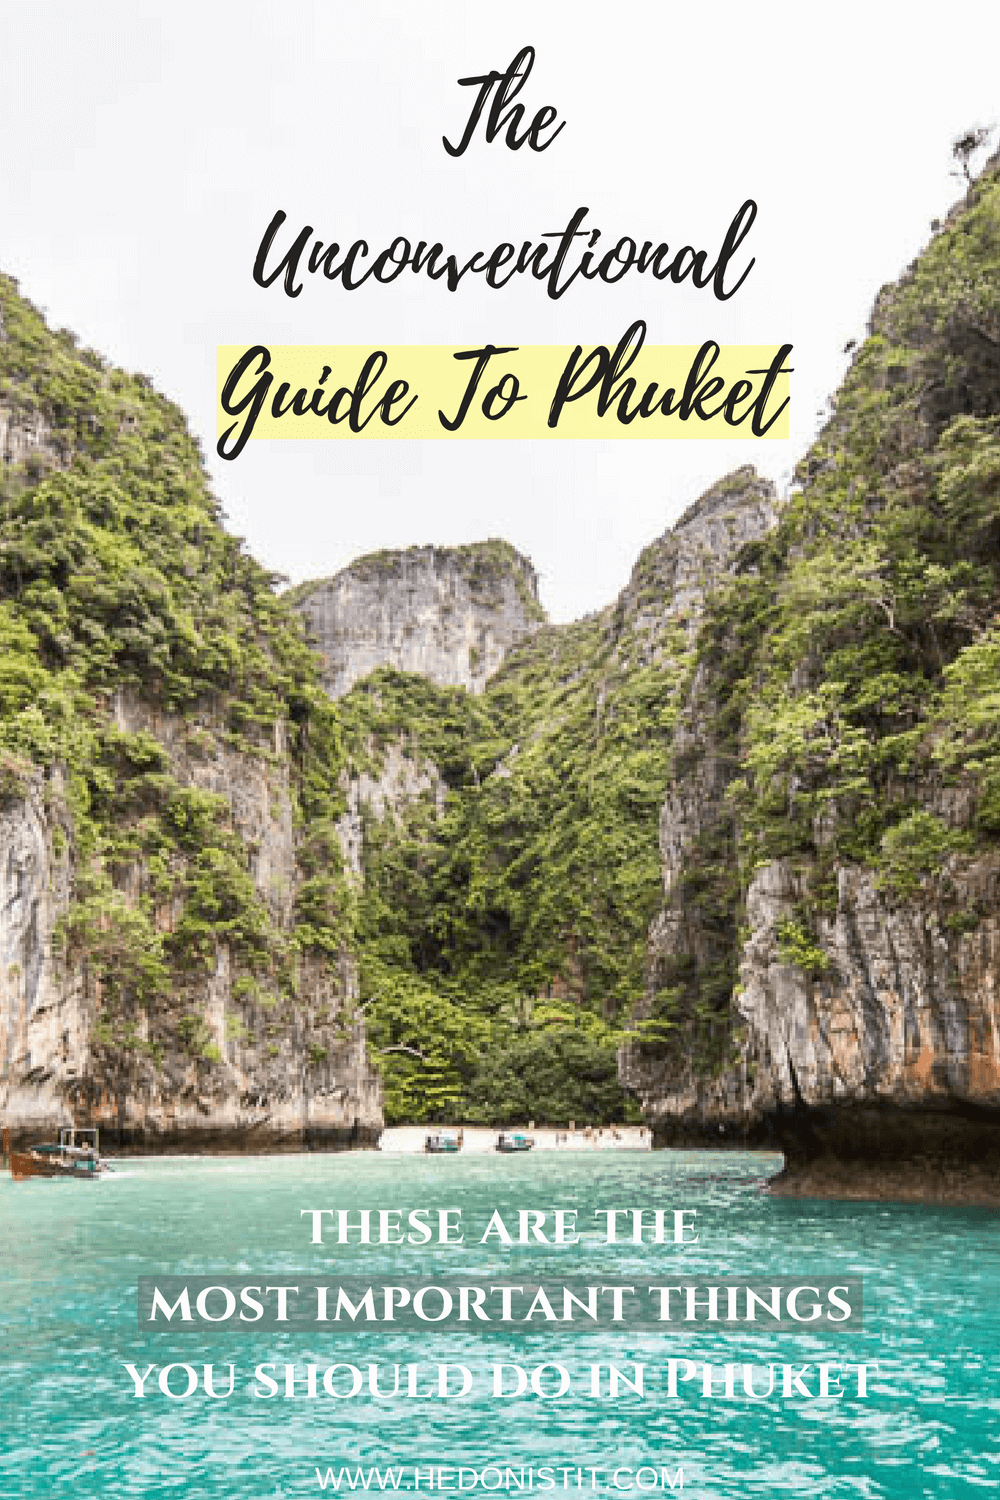 Tired of the same old generic Phuket travel guides? Read about the 6 things you have to do when going for a vacation in Phuket - and a few other attractions you should and shouldn't do while in the island. this article is simply great - pin it now and use it when in Phuket. Click through to read more @ www.hedonistit.com